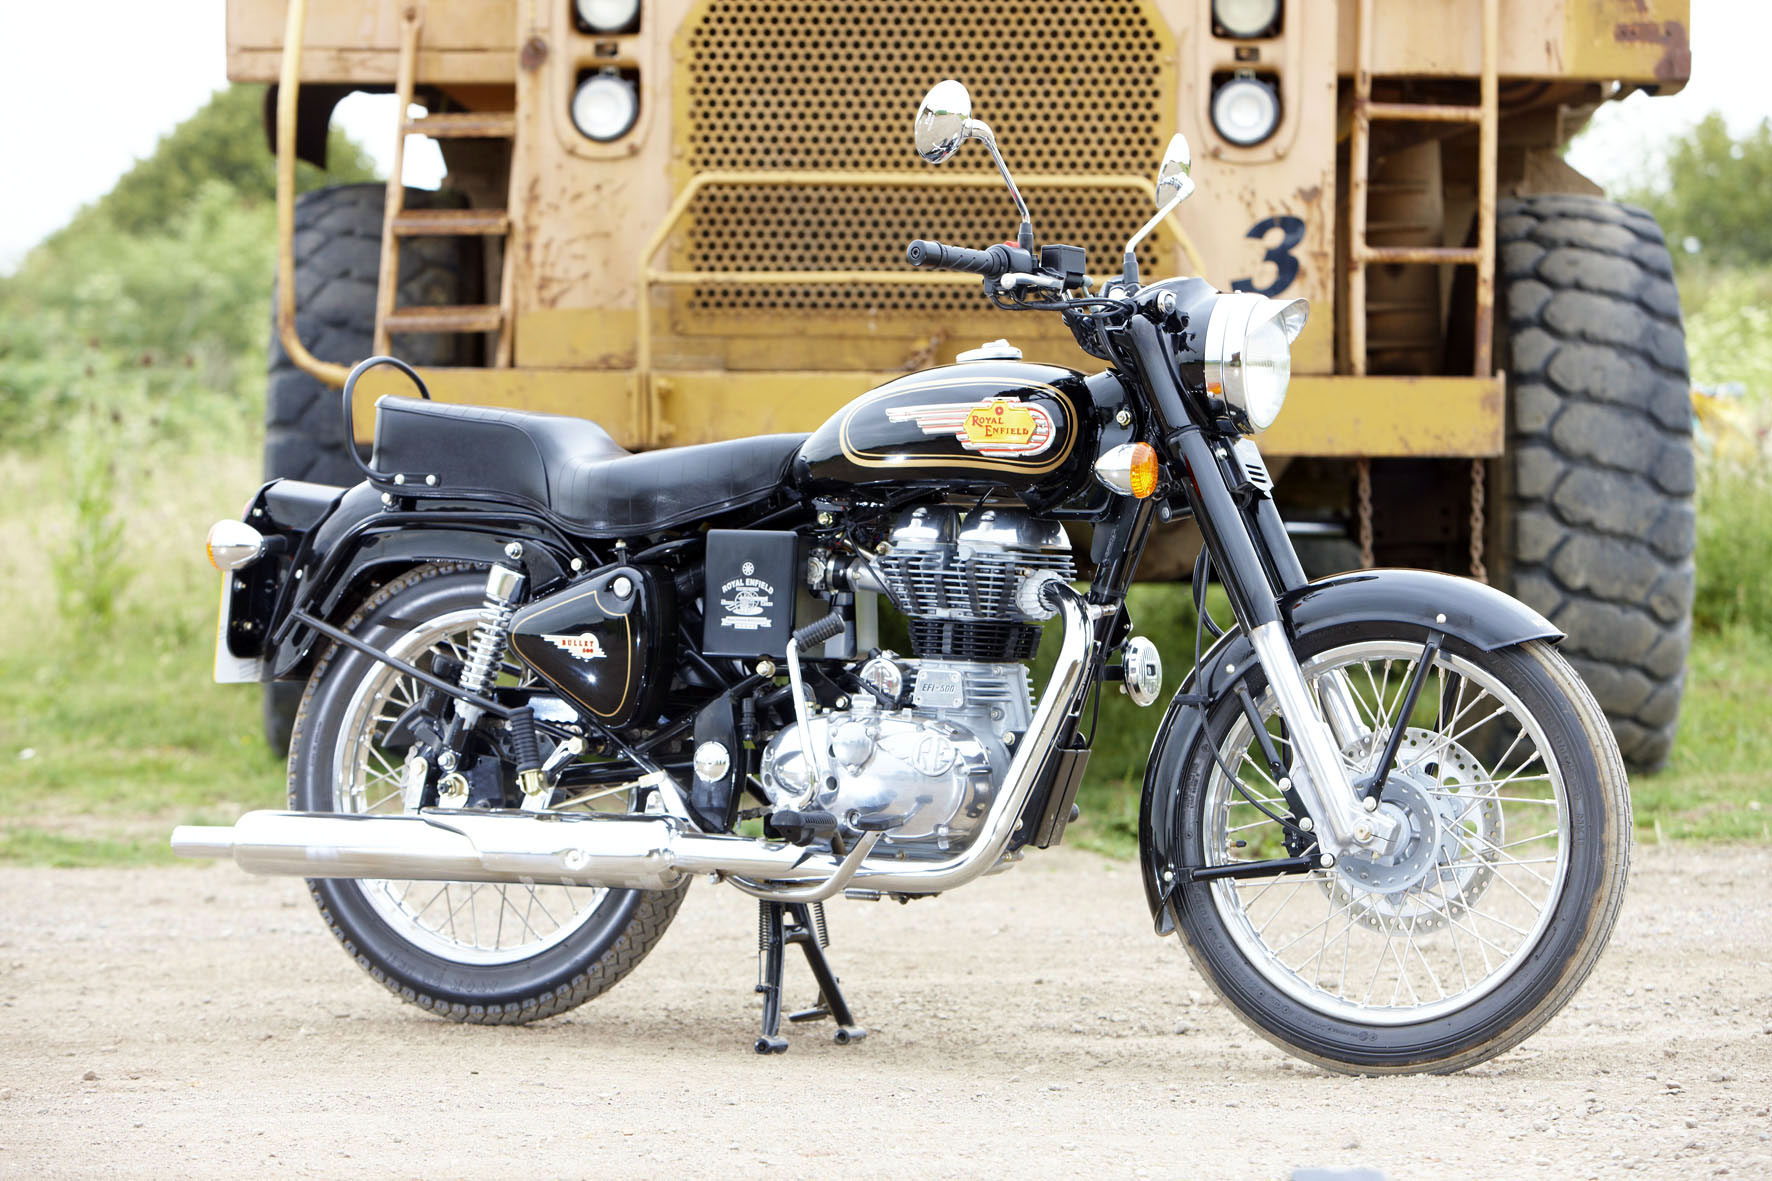 Royal Enfield Bullet 500 Trial Trail 2007 images #123686